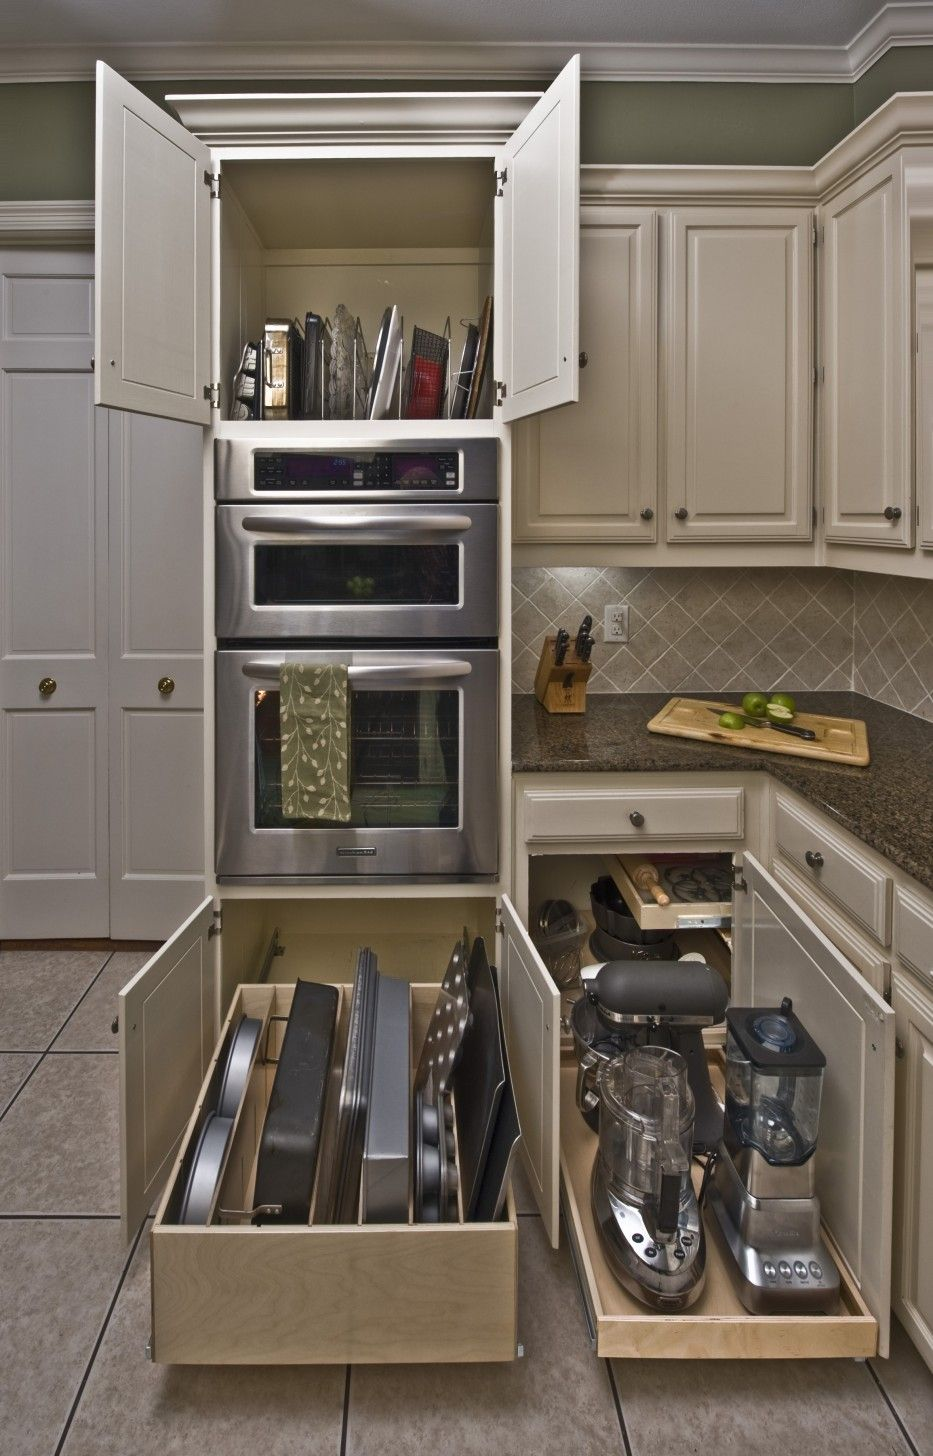 Organizing Kitchen Storage Systems and Pantry for Ultimate Comfort. Classic designed kitchen with long retractable shelves